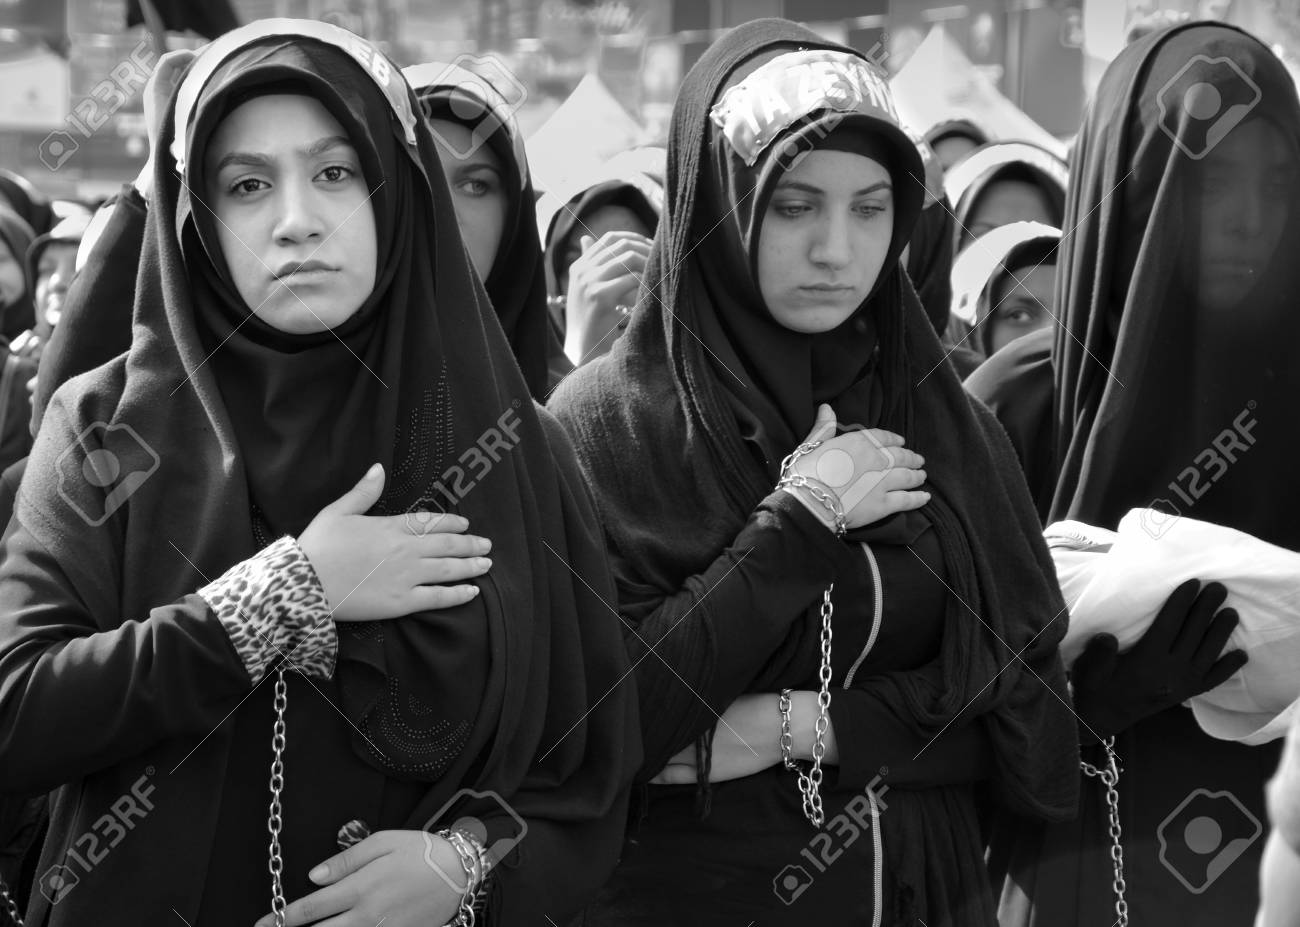 Istanbul, Turkey - October 11, 2016: Shia Muslim women mourn during Ashura. Turkish Shia Muslims mourning for Imam Hussain. Caferis take part in a mourning procession marking the day of Ashura in Istanbul's Kucukcekmece district, Turkey on October 11, 201 - 75291158